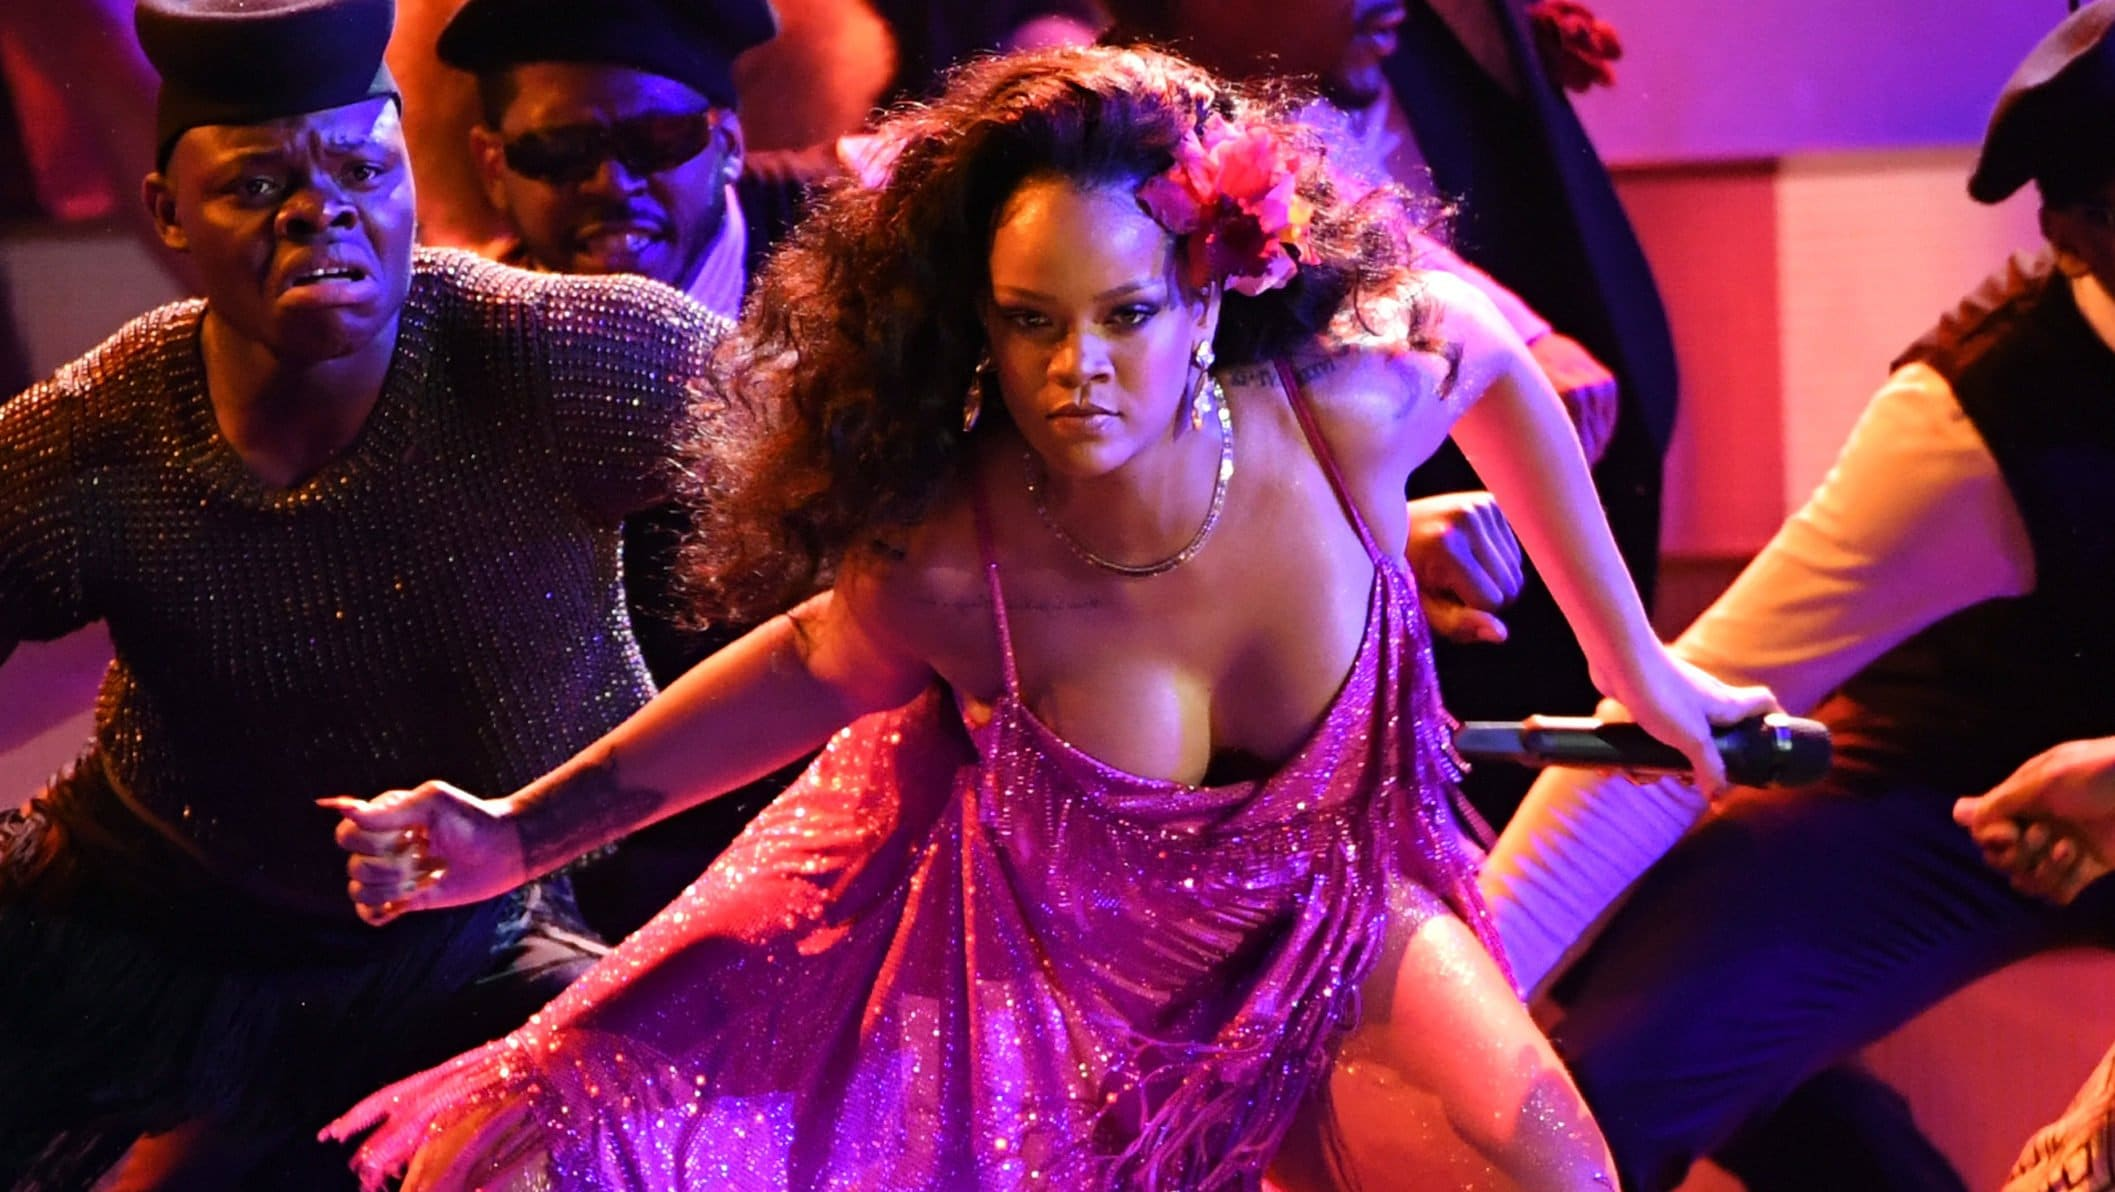 Rihanna does Gwara Gwara dance at the Grammy's